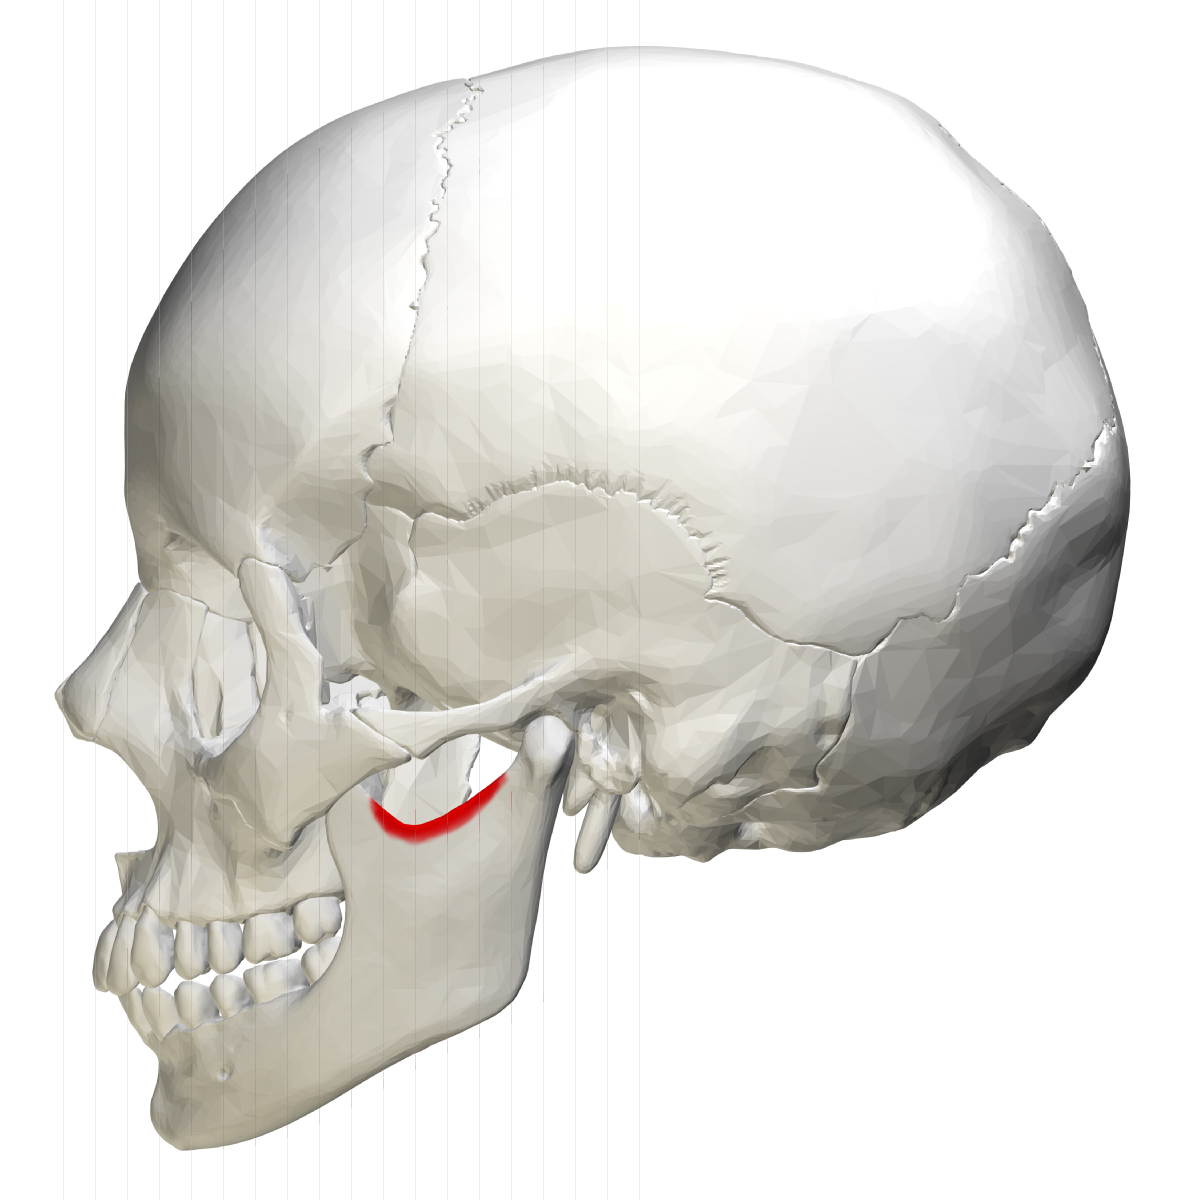 Mandibular Notch Wikipedia